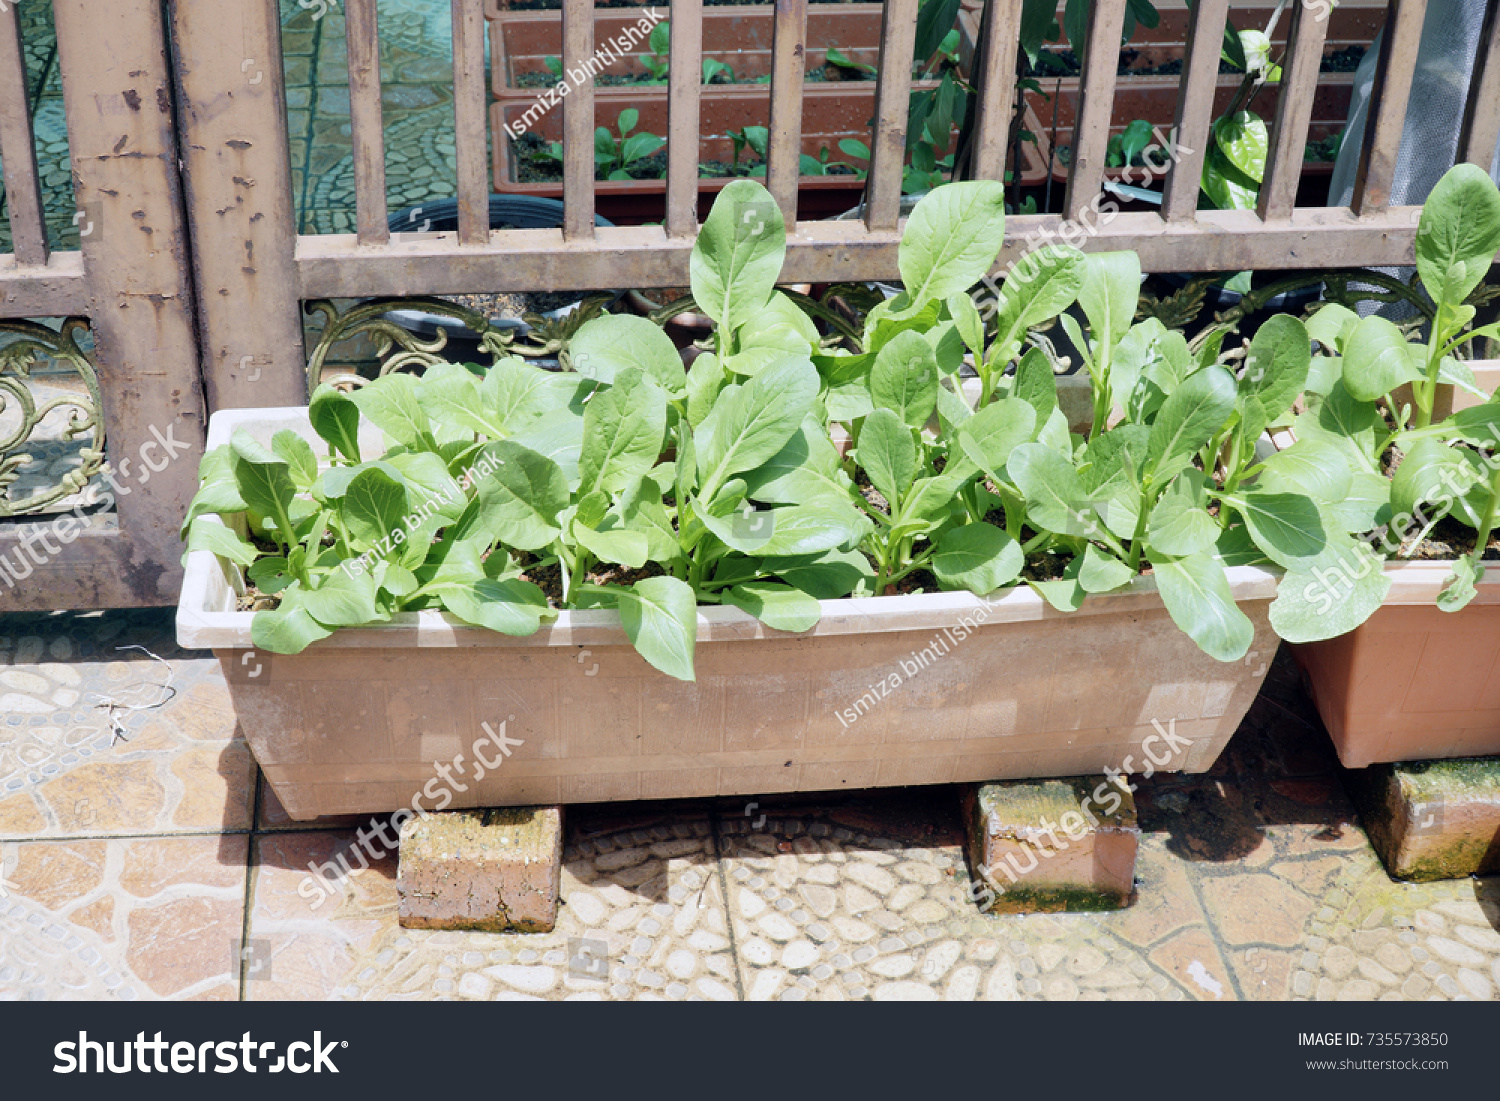 Vegetable From Backyard Garden, Plant In A Flowerpot To Save A Limited Space .